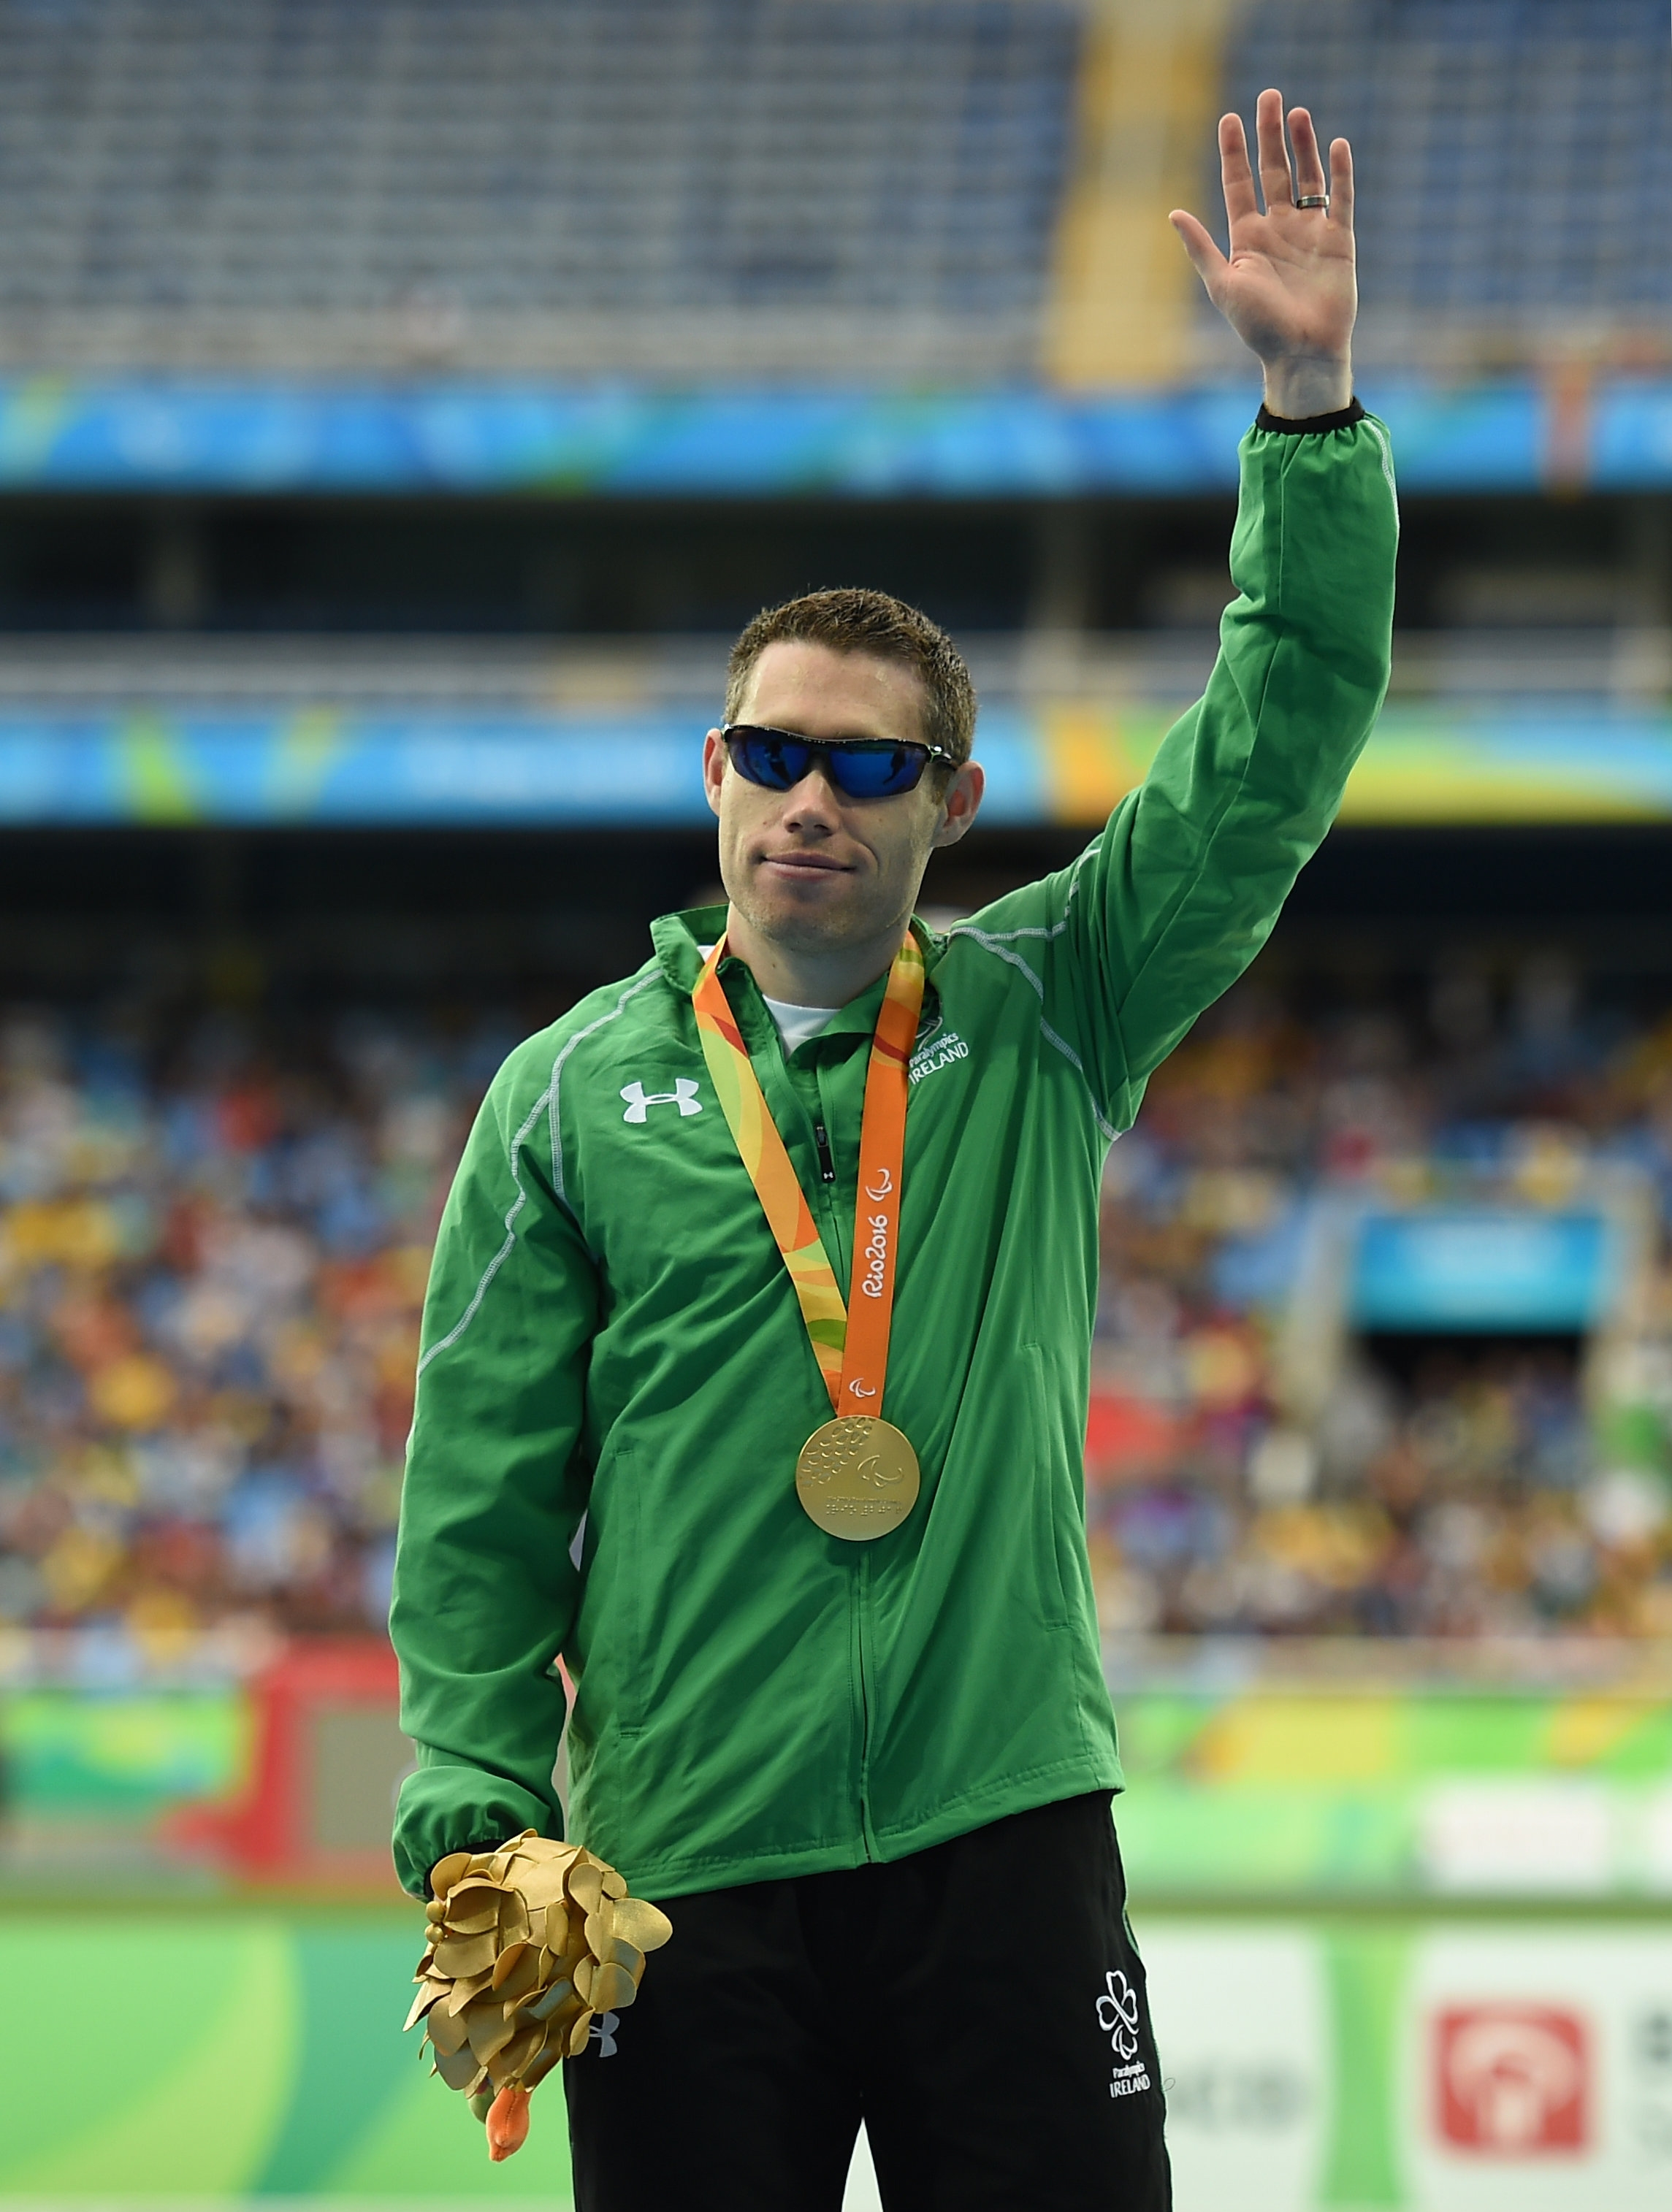 Athletics - Jason 5.jpg